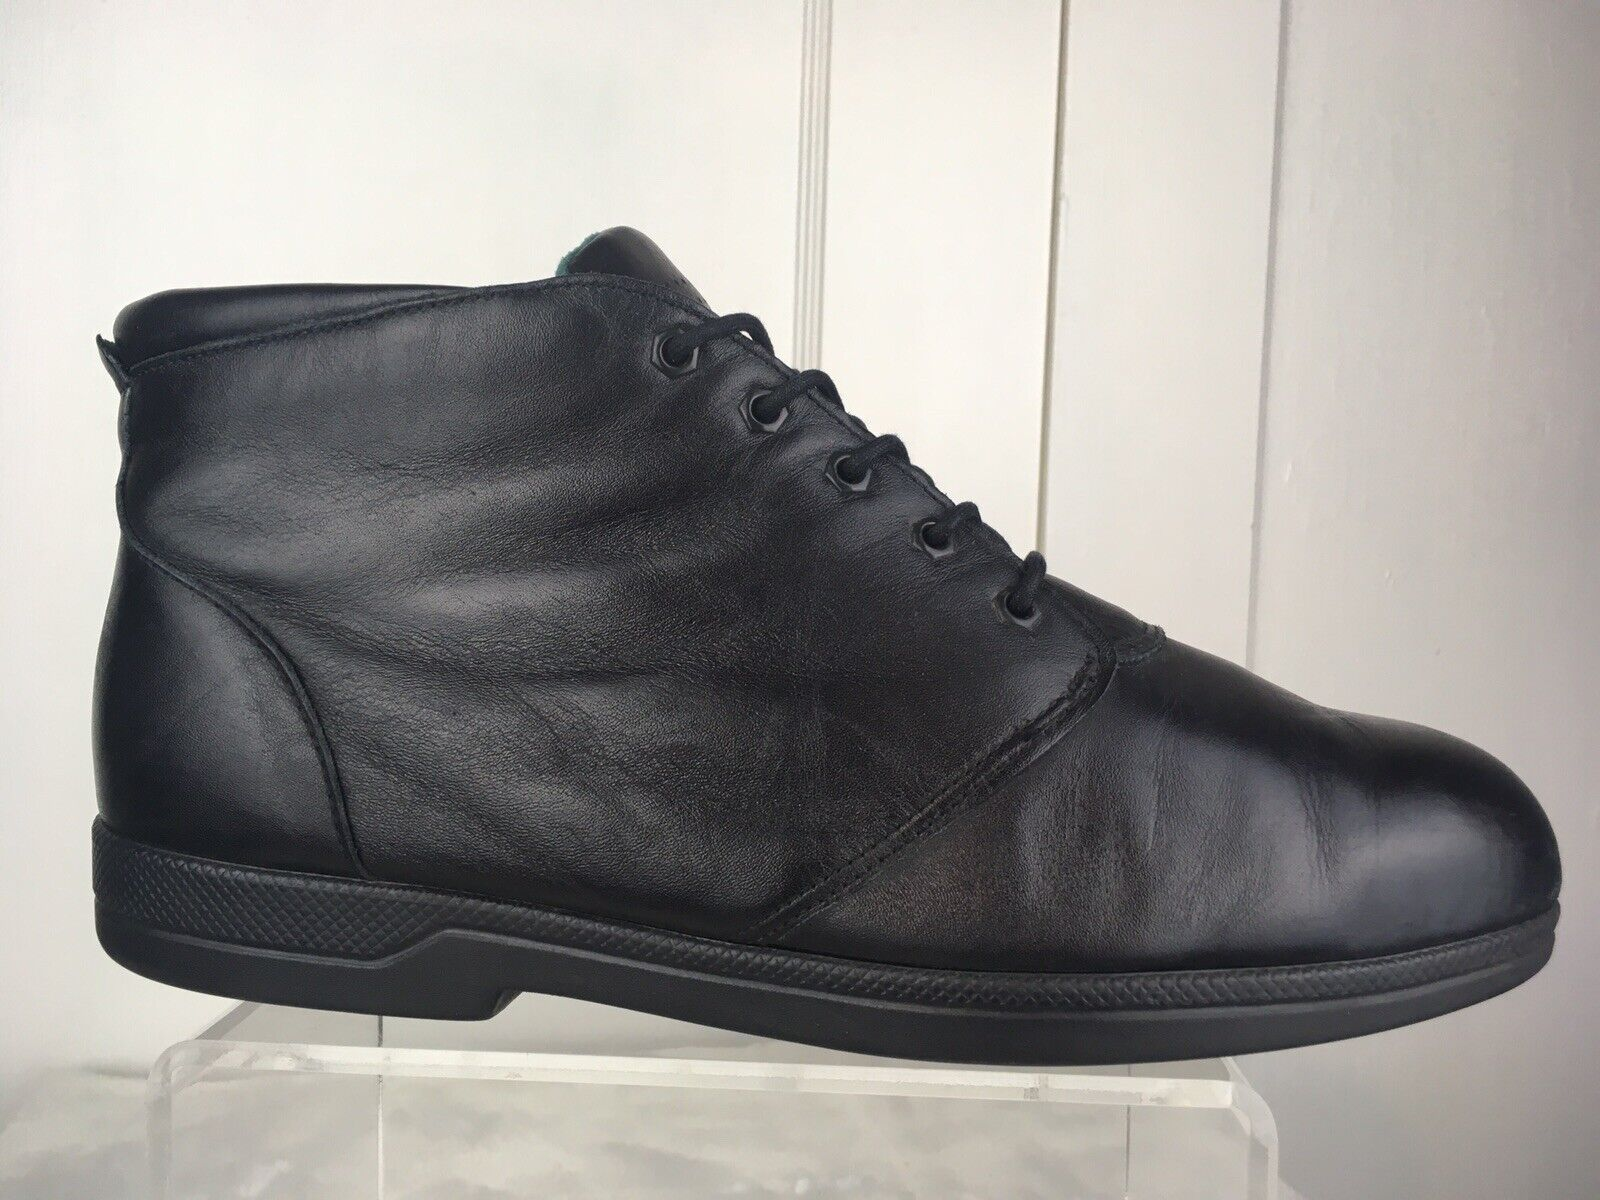 Red Red Red Wing 2370 Lace Up Steel Toe Ankle Boots Black Leather USA Women's Sz 10D GUC 79970c